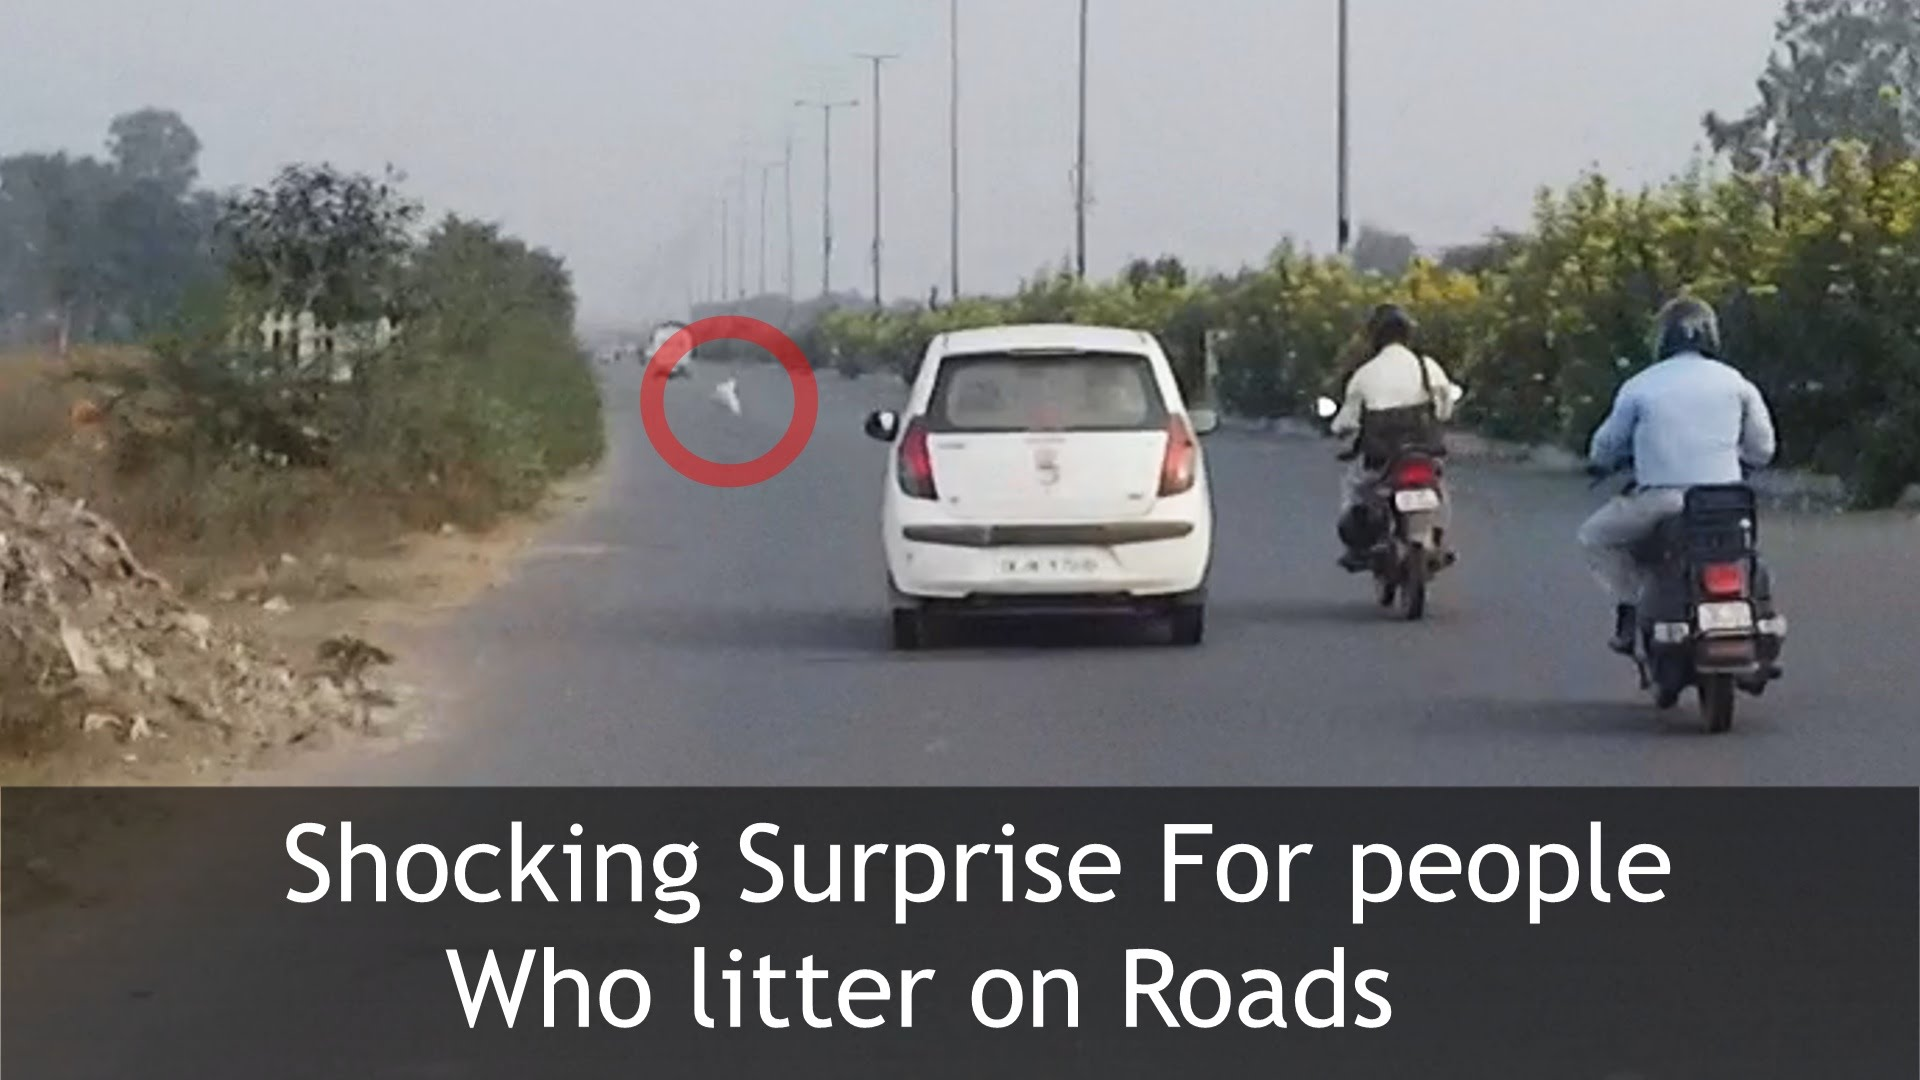 Surprise for People Littering on Roads